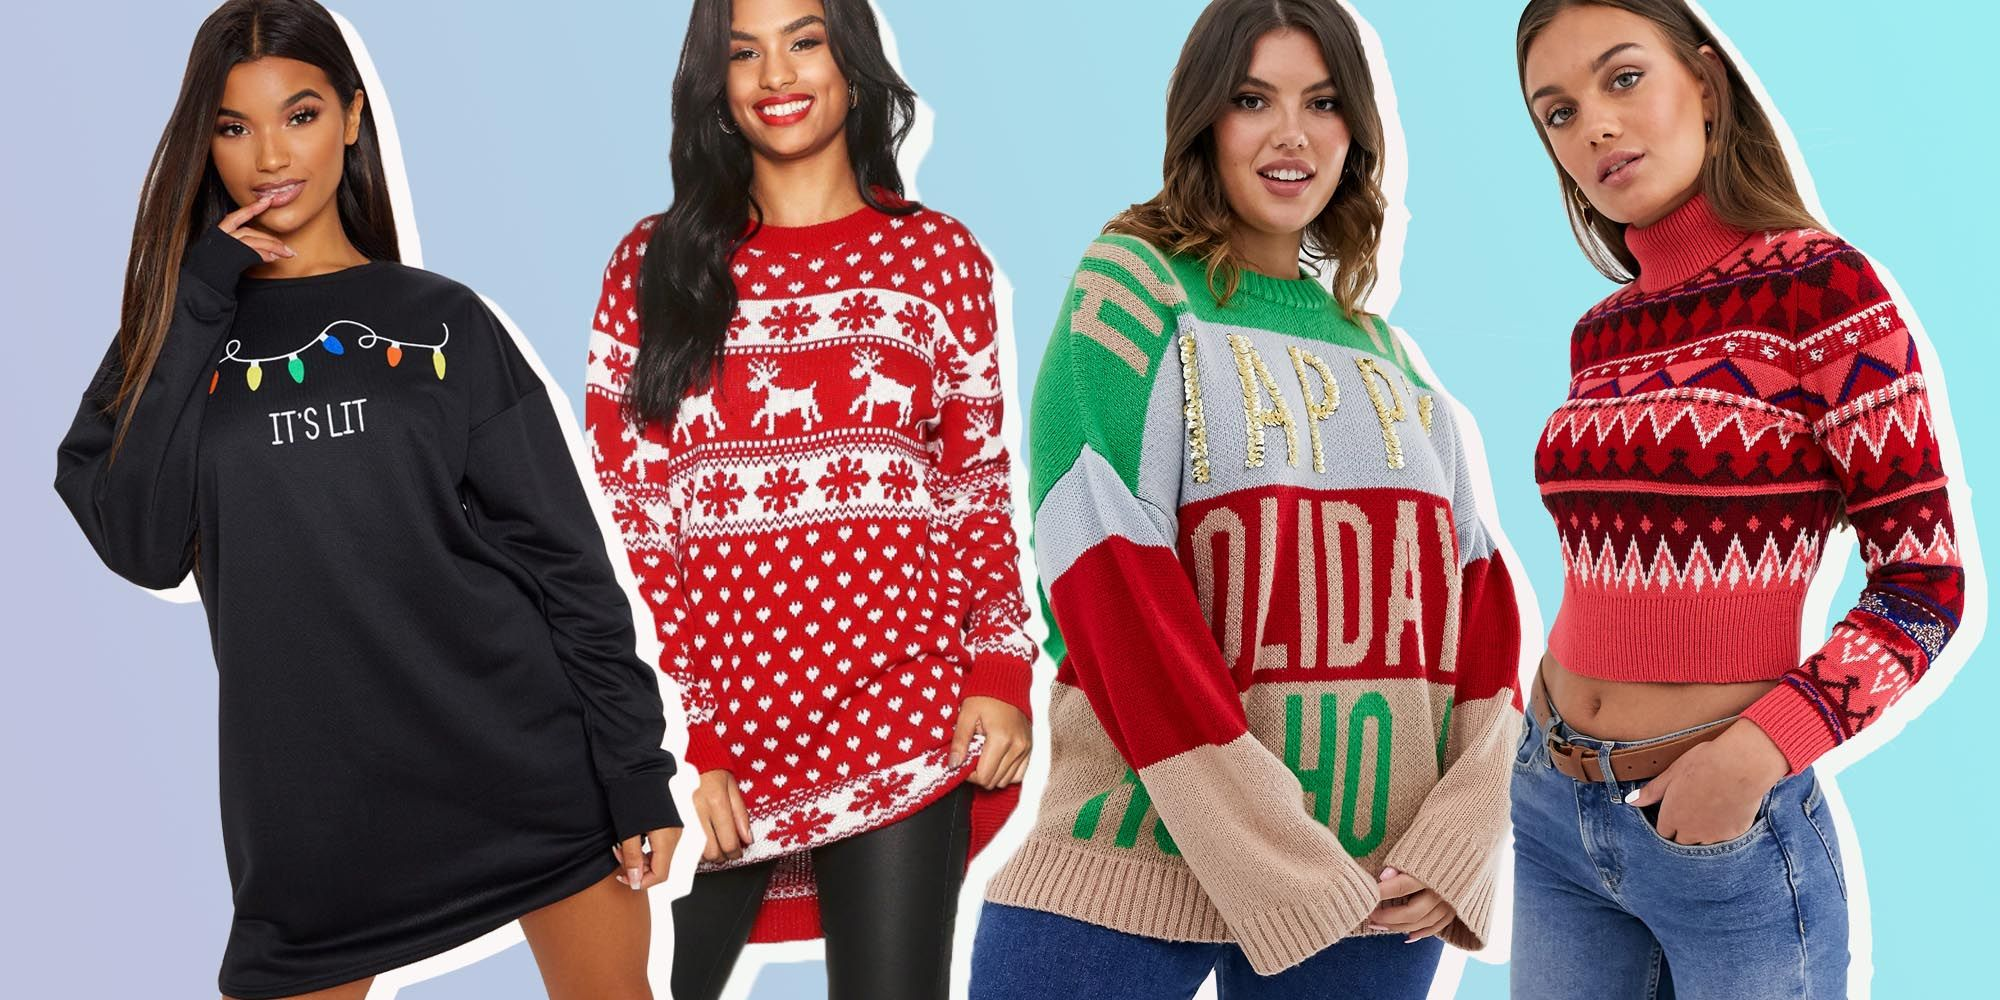 Christmas jumpers 2019: Best jumpers to buy according to our Editors